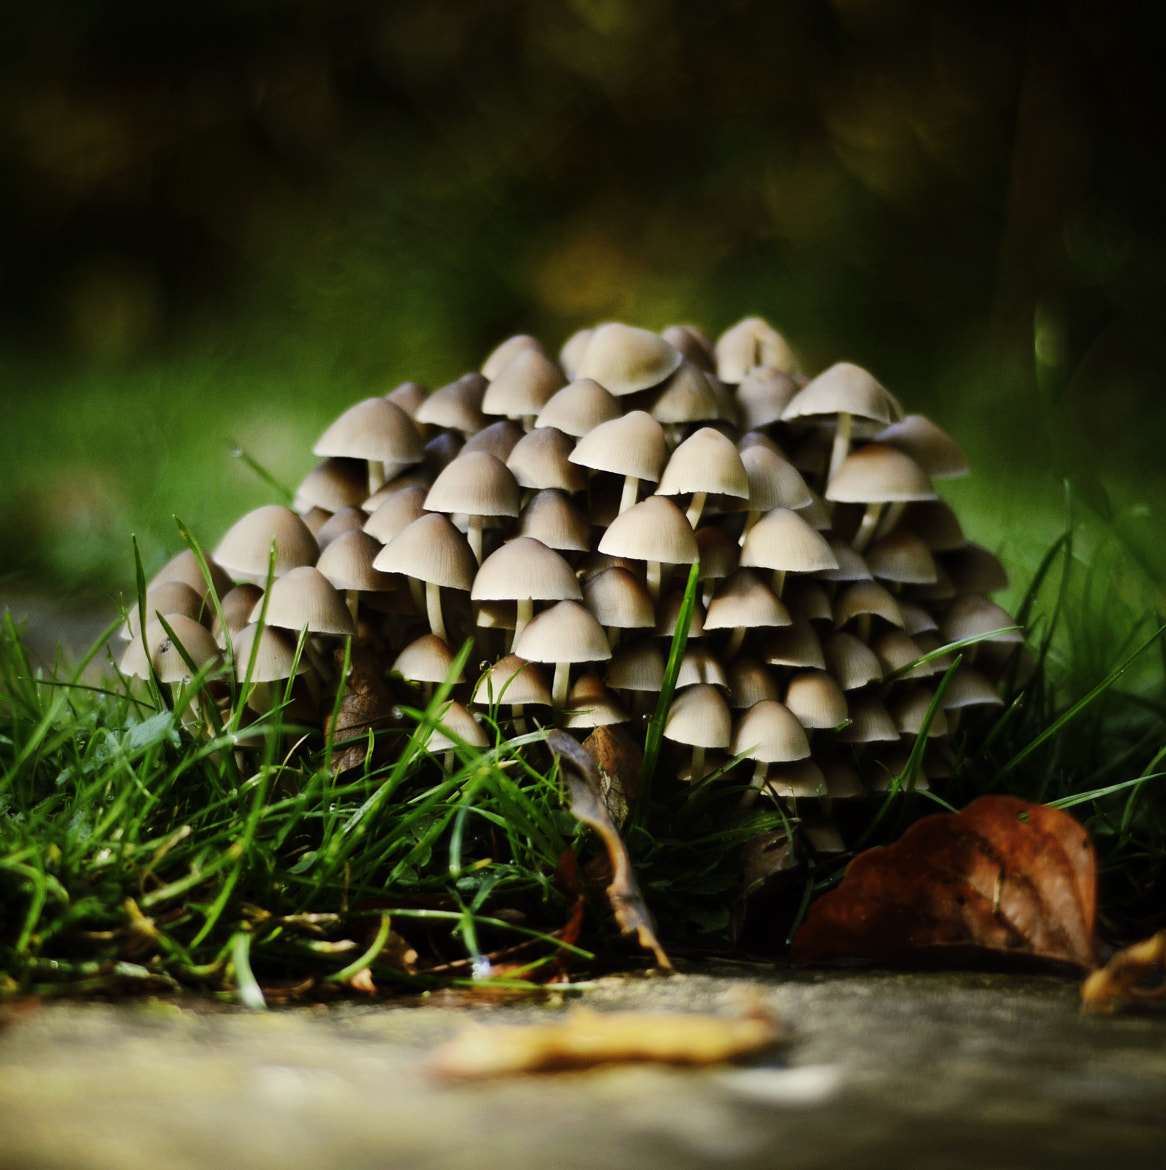 Photograph Mushrooms by Sam Knight on 500px